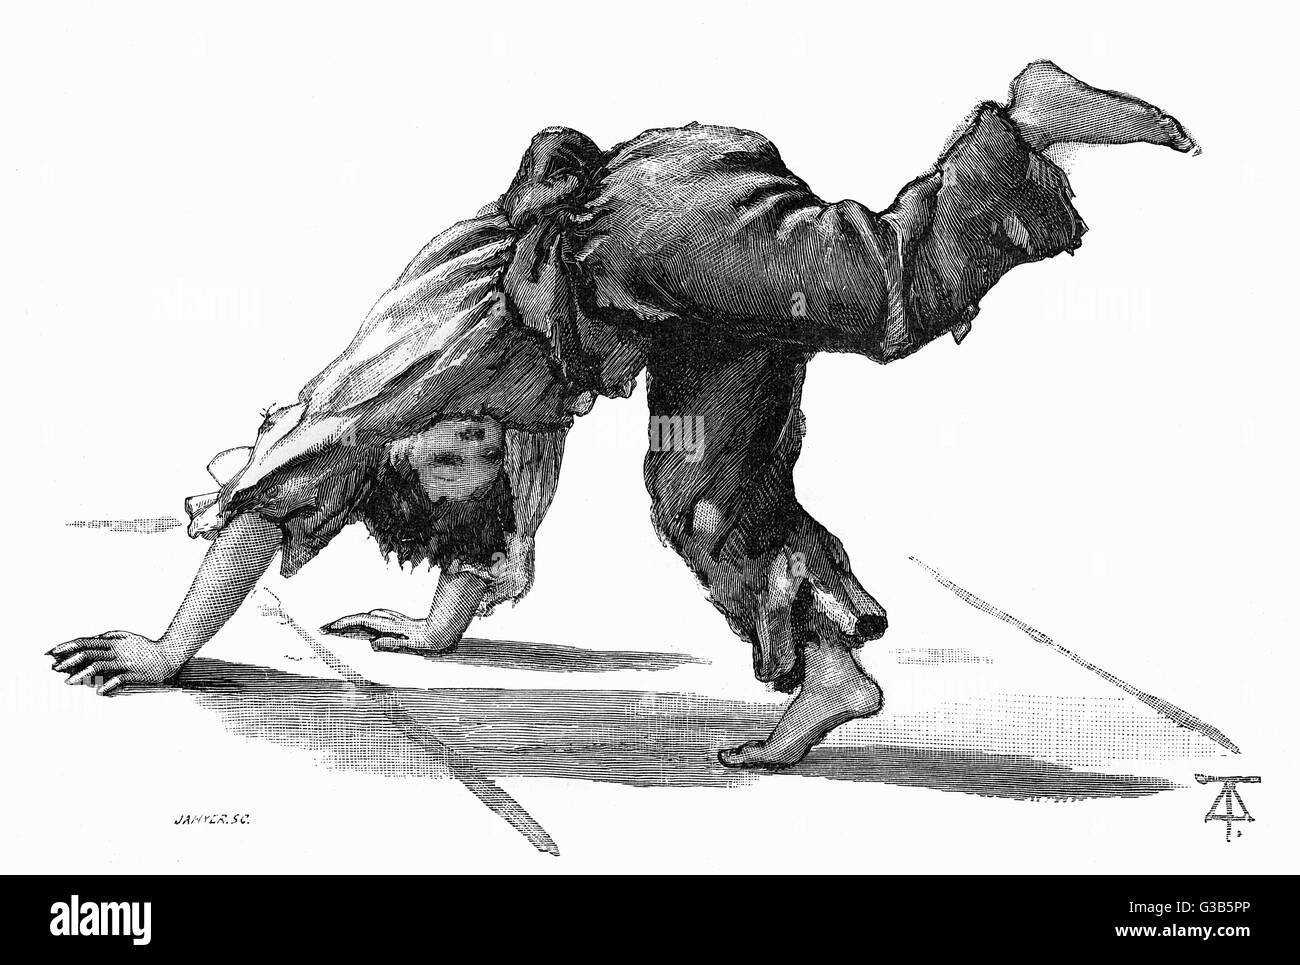 A London ragamuffin  performs a cartwheel        Date: 1884 - Stock Image